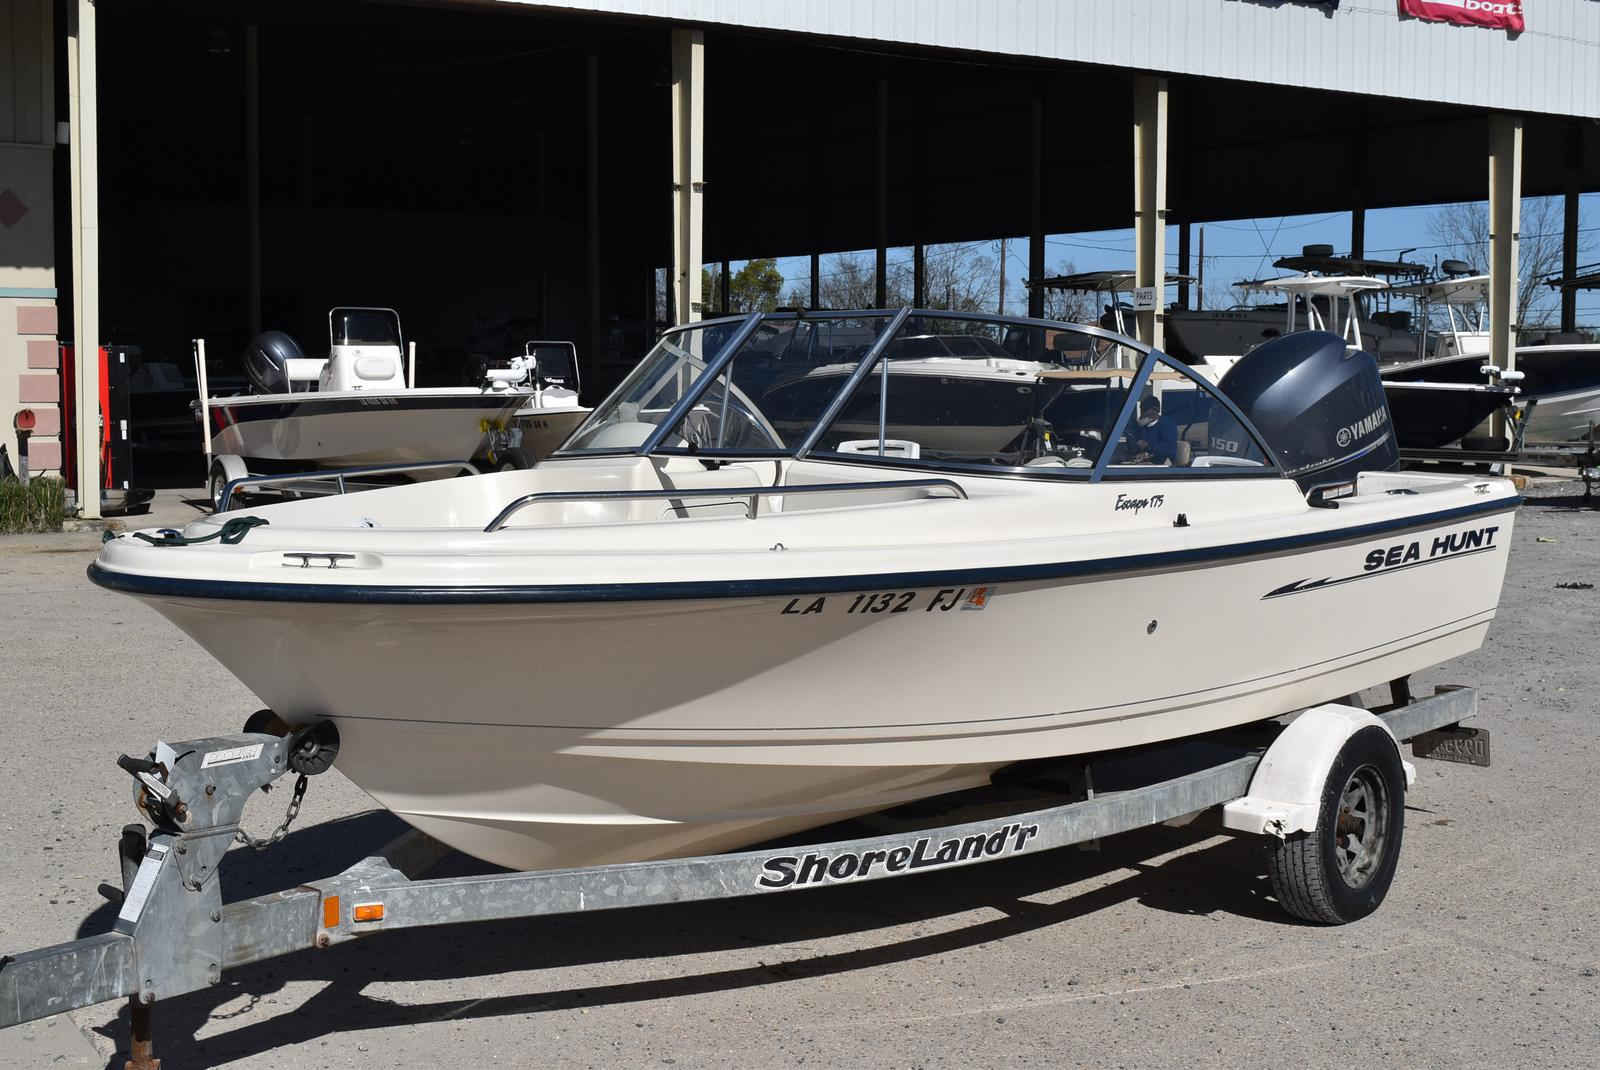 2003 Sea Hunt boat for sale, model of the boat is Escape 175 & Image # 3 of 16